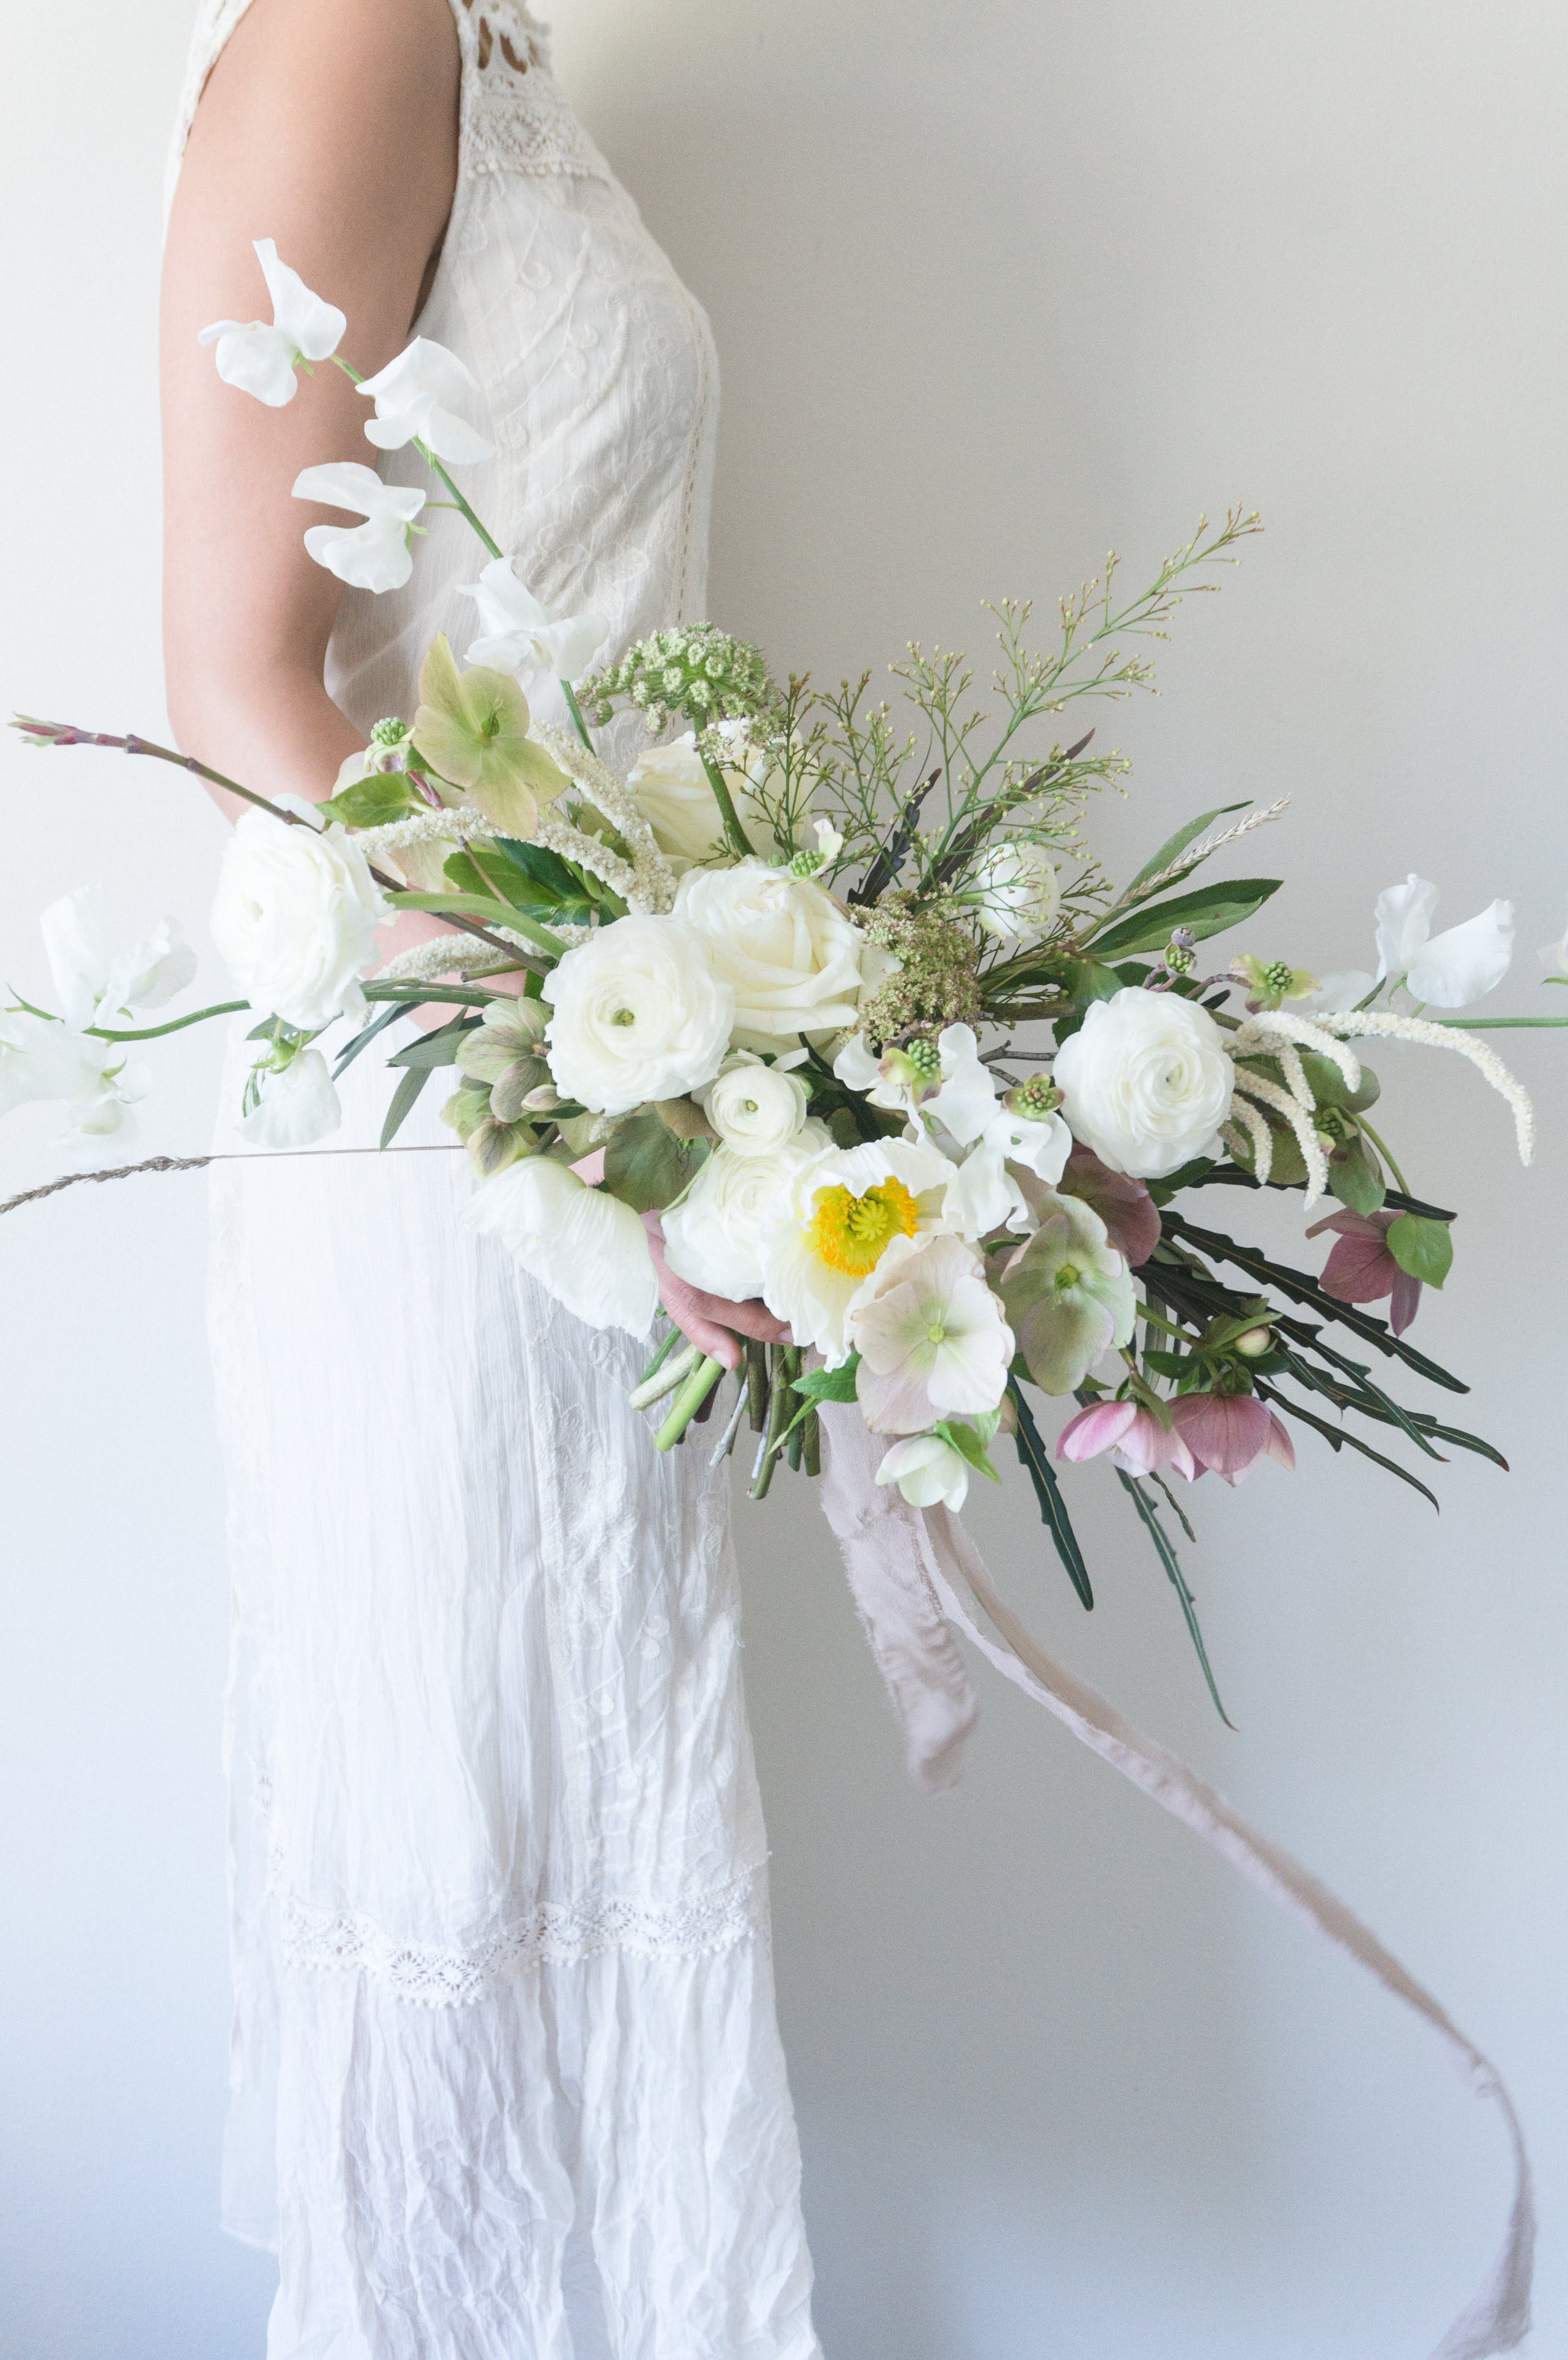 Bridal Bouquet Bough Twig Floral Styling Studio White